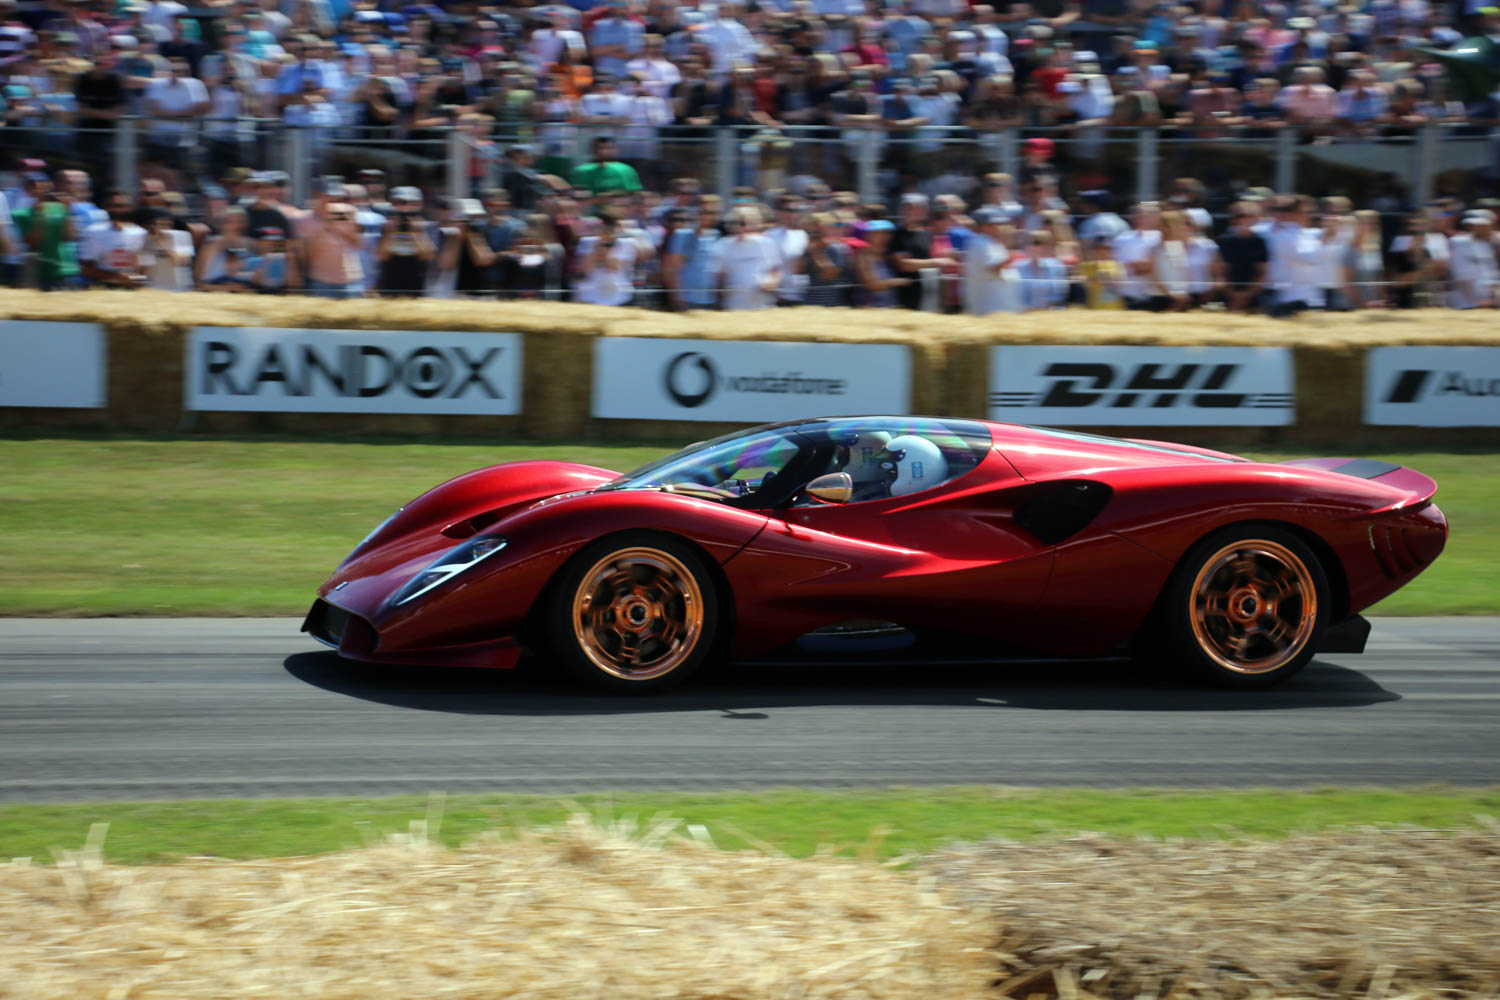 The De Tomaso P72 is powered by a supercharged Roush V-8 with 700+ hp thumbnail